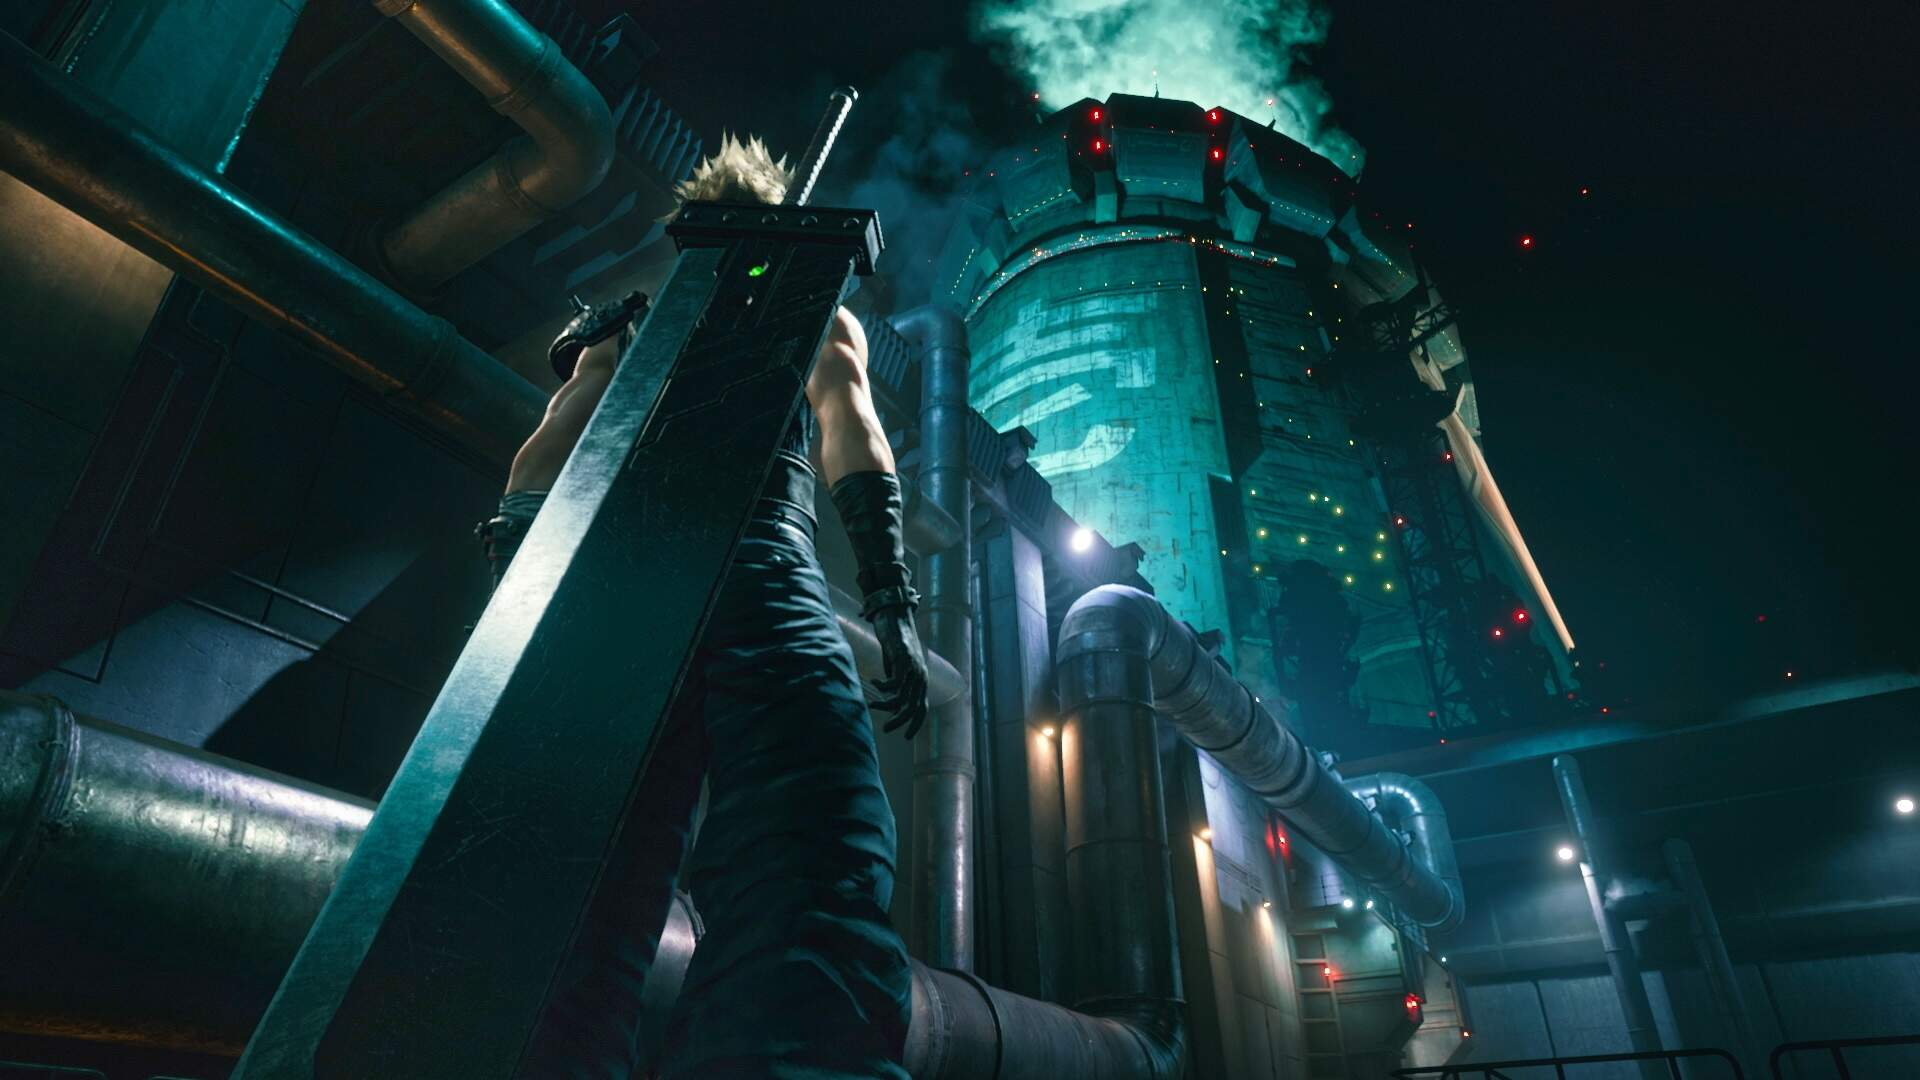 Final Fantasy 7 Remake's Producer Explains Why Squats Are Not Going Away